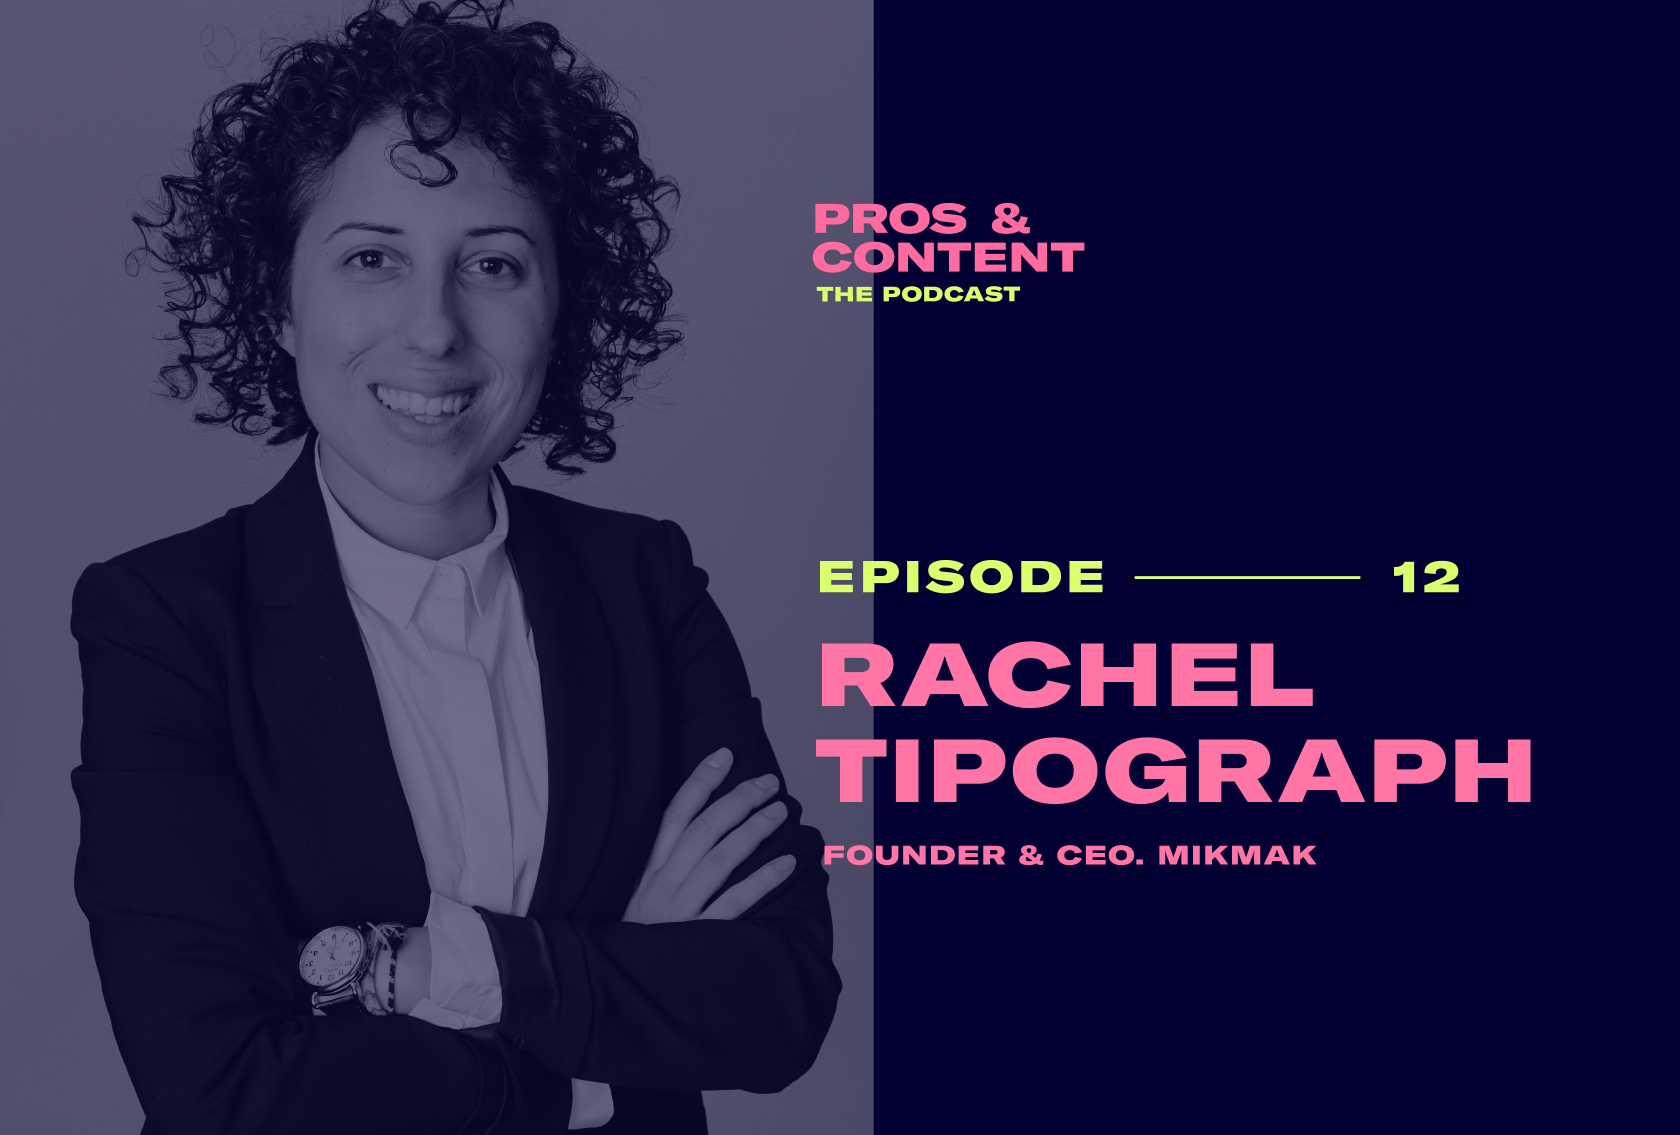 Pros & Content Podcast: Rachel Tipograph (Founder & CEO of MikMak)